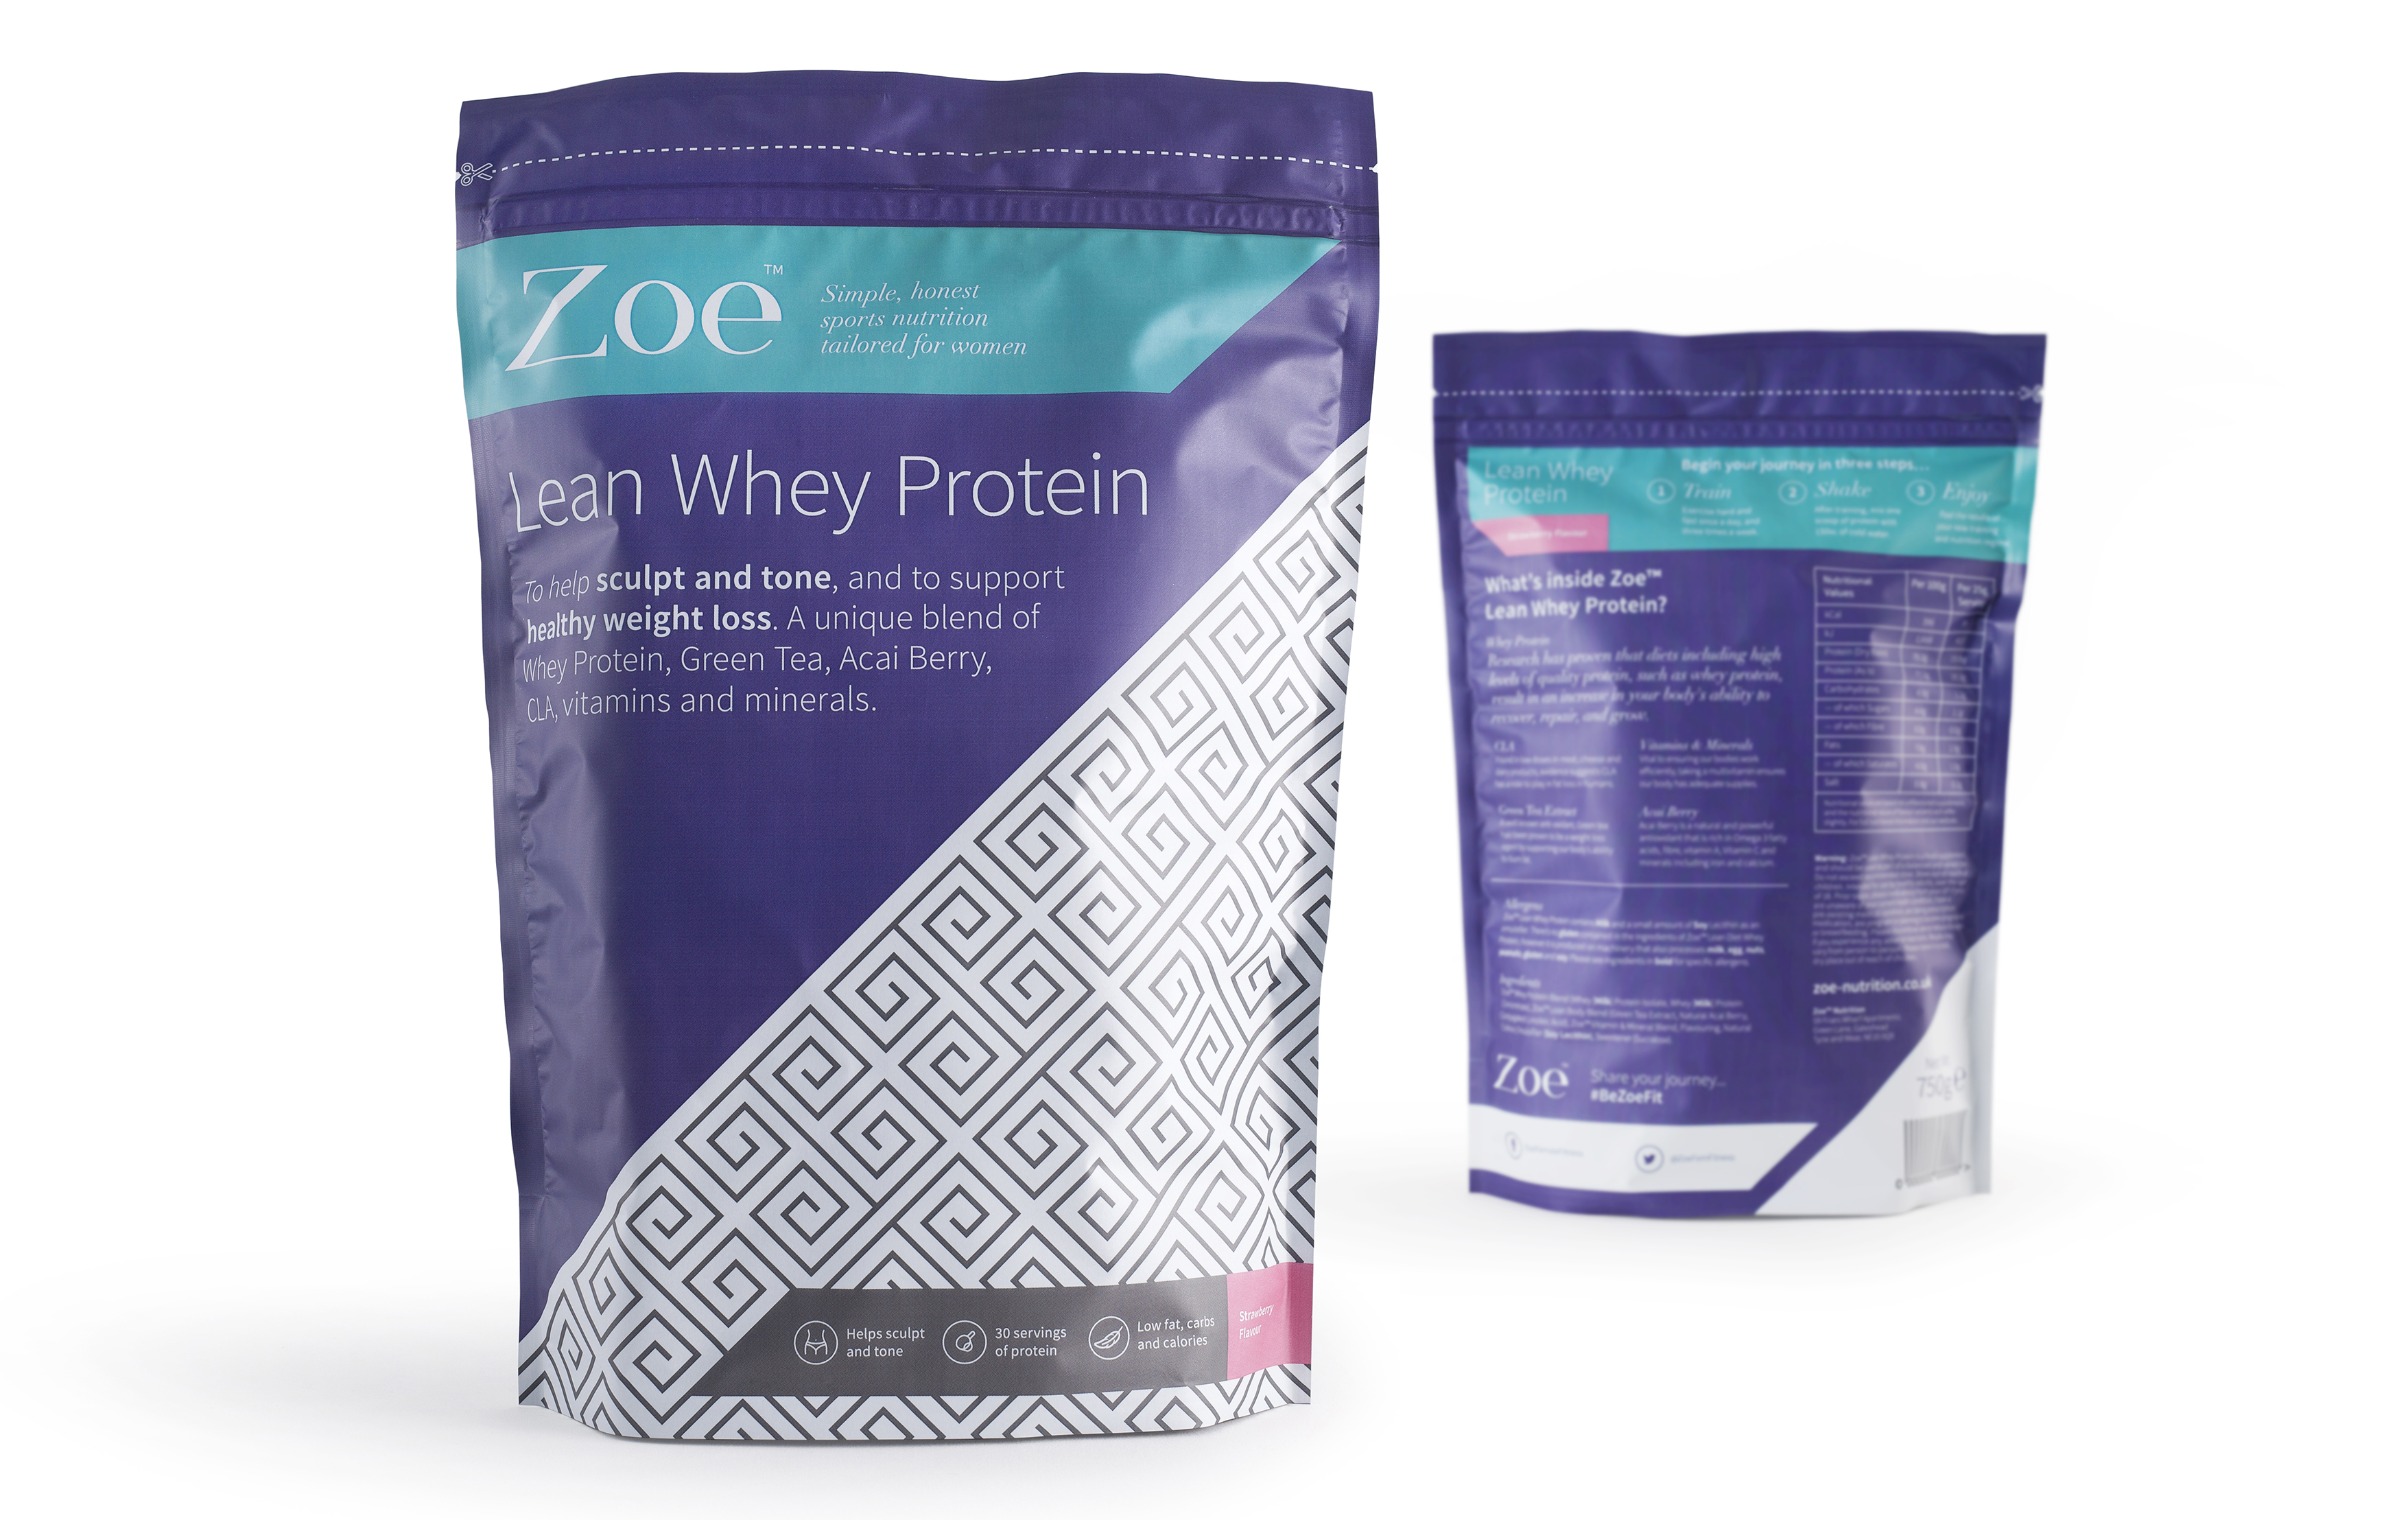 Zoe Protein Packaging Design